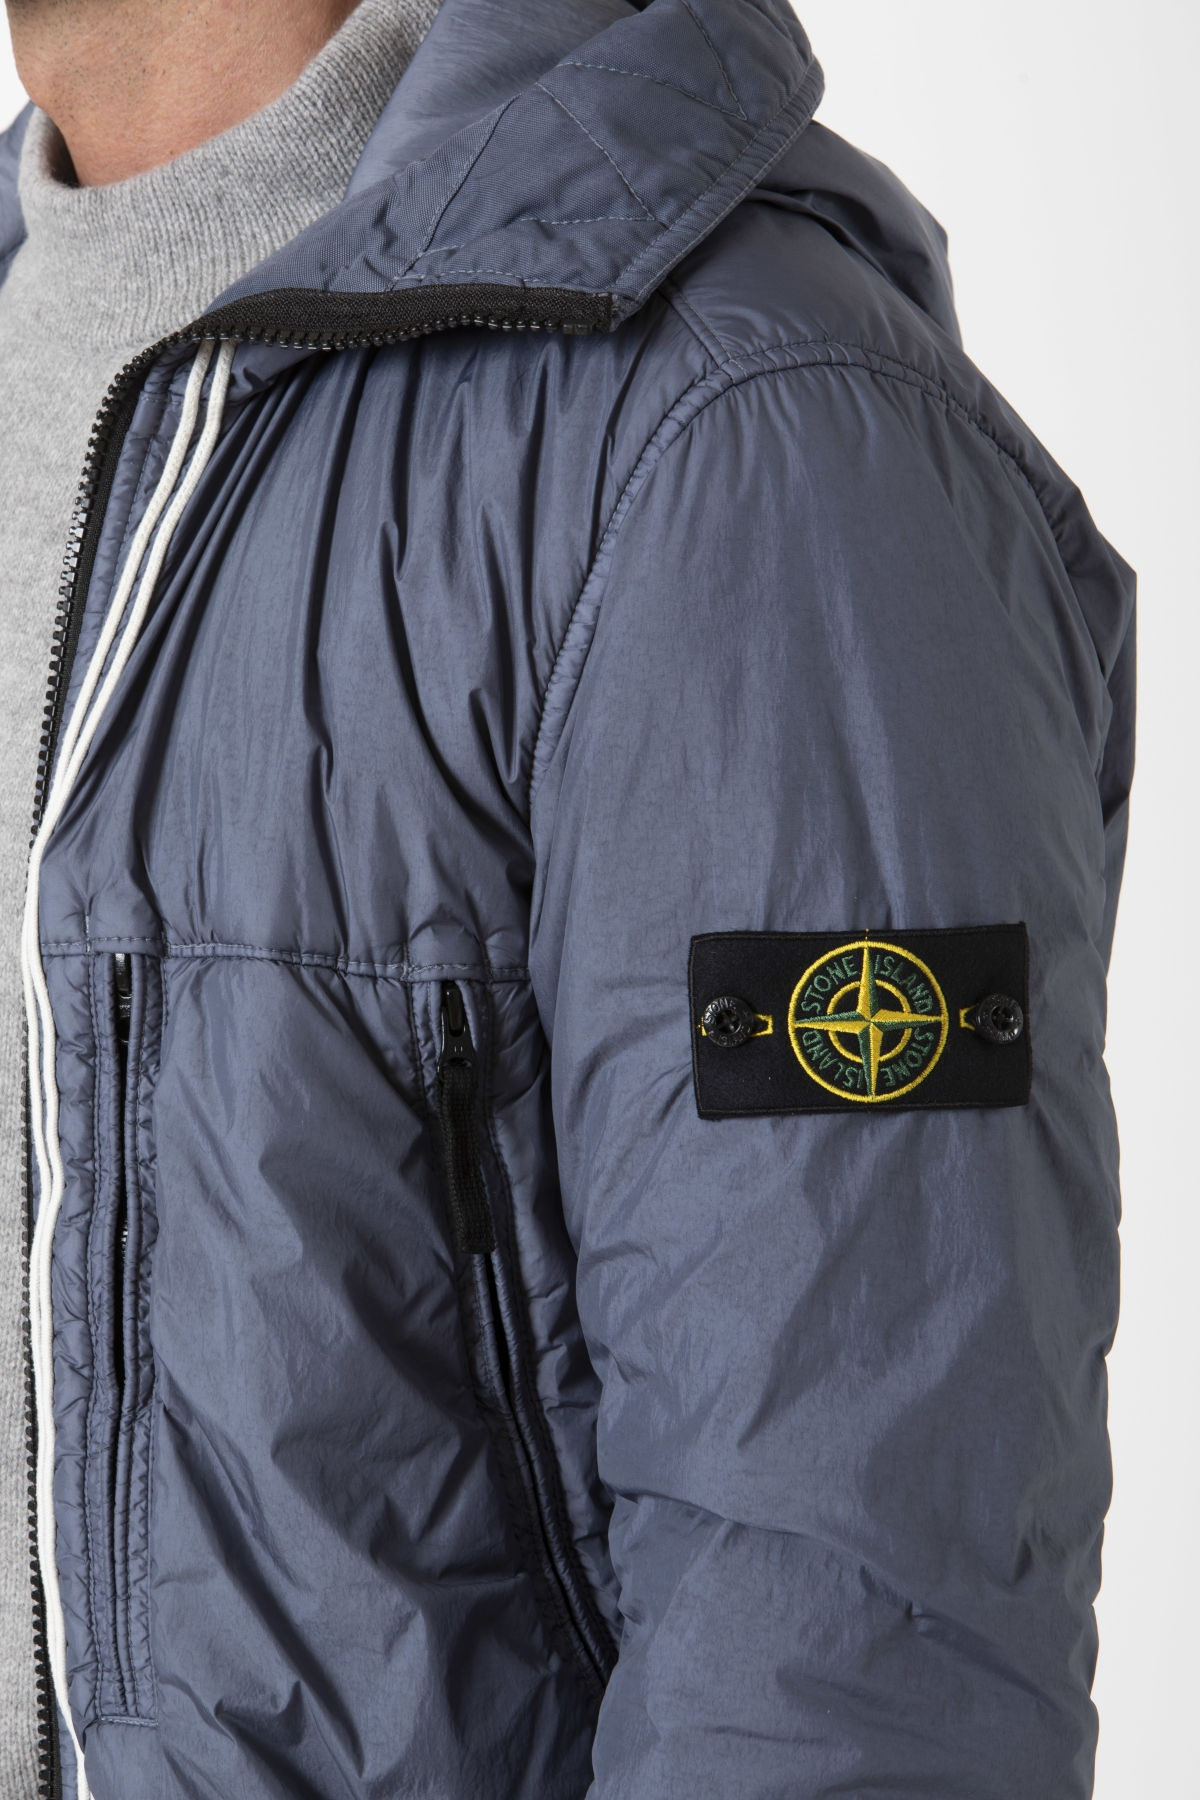 Giubbotto GARMENT DYED CRINKLE REPS NY per uomo STONE ISLAND A/I 19-20